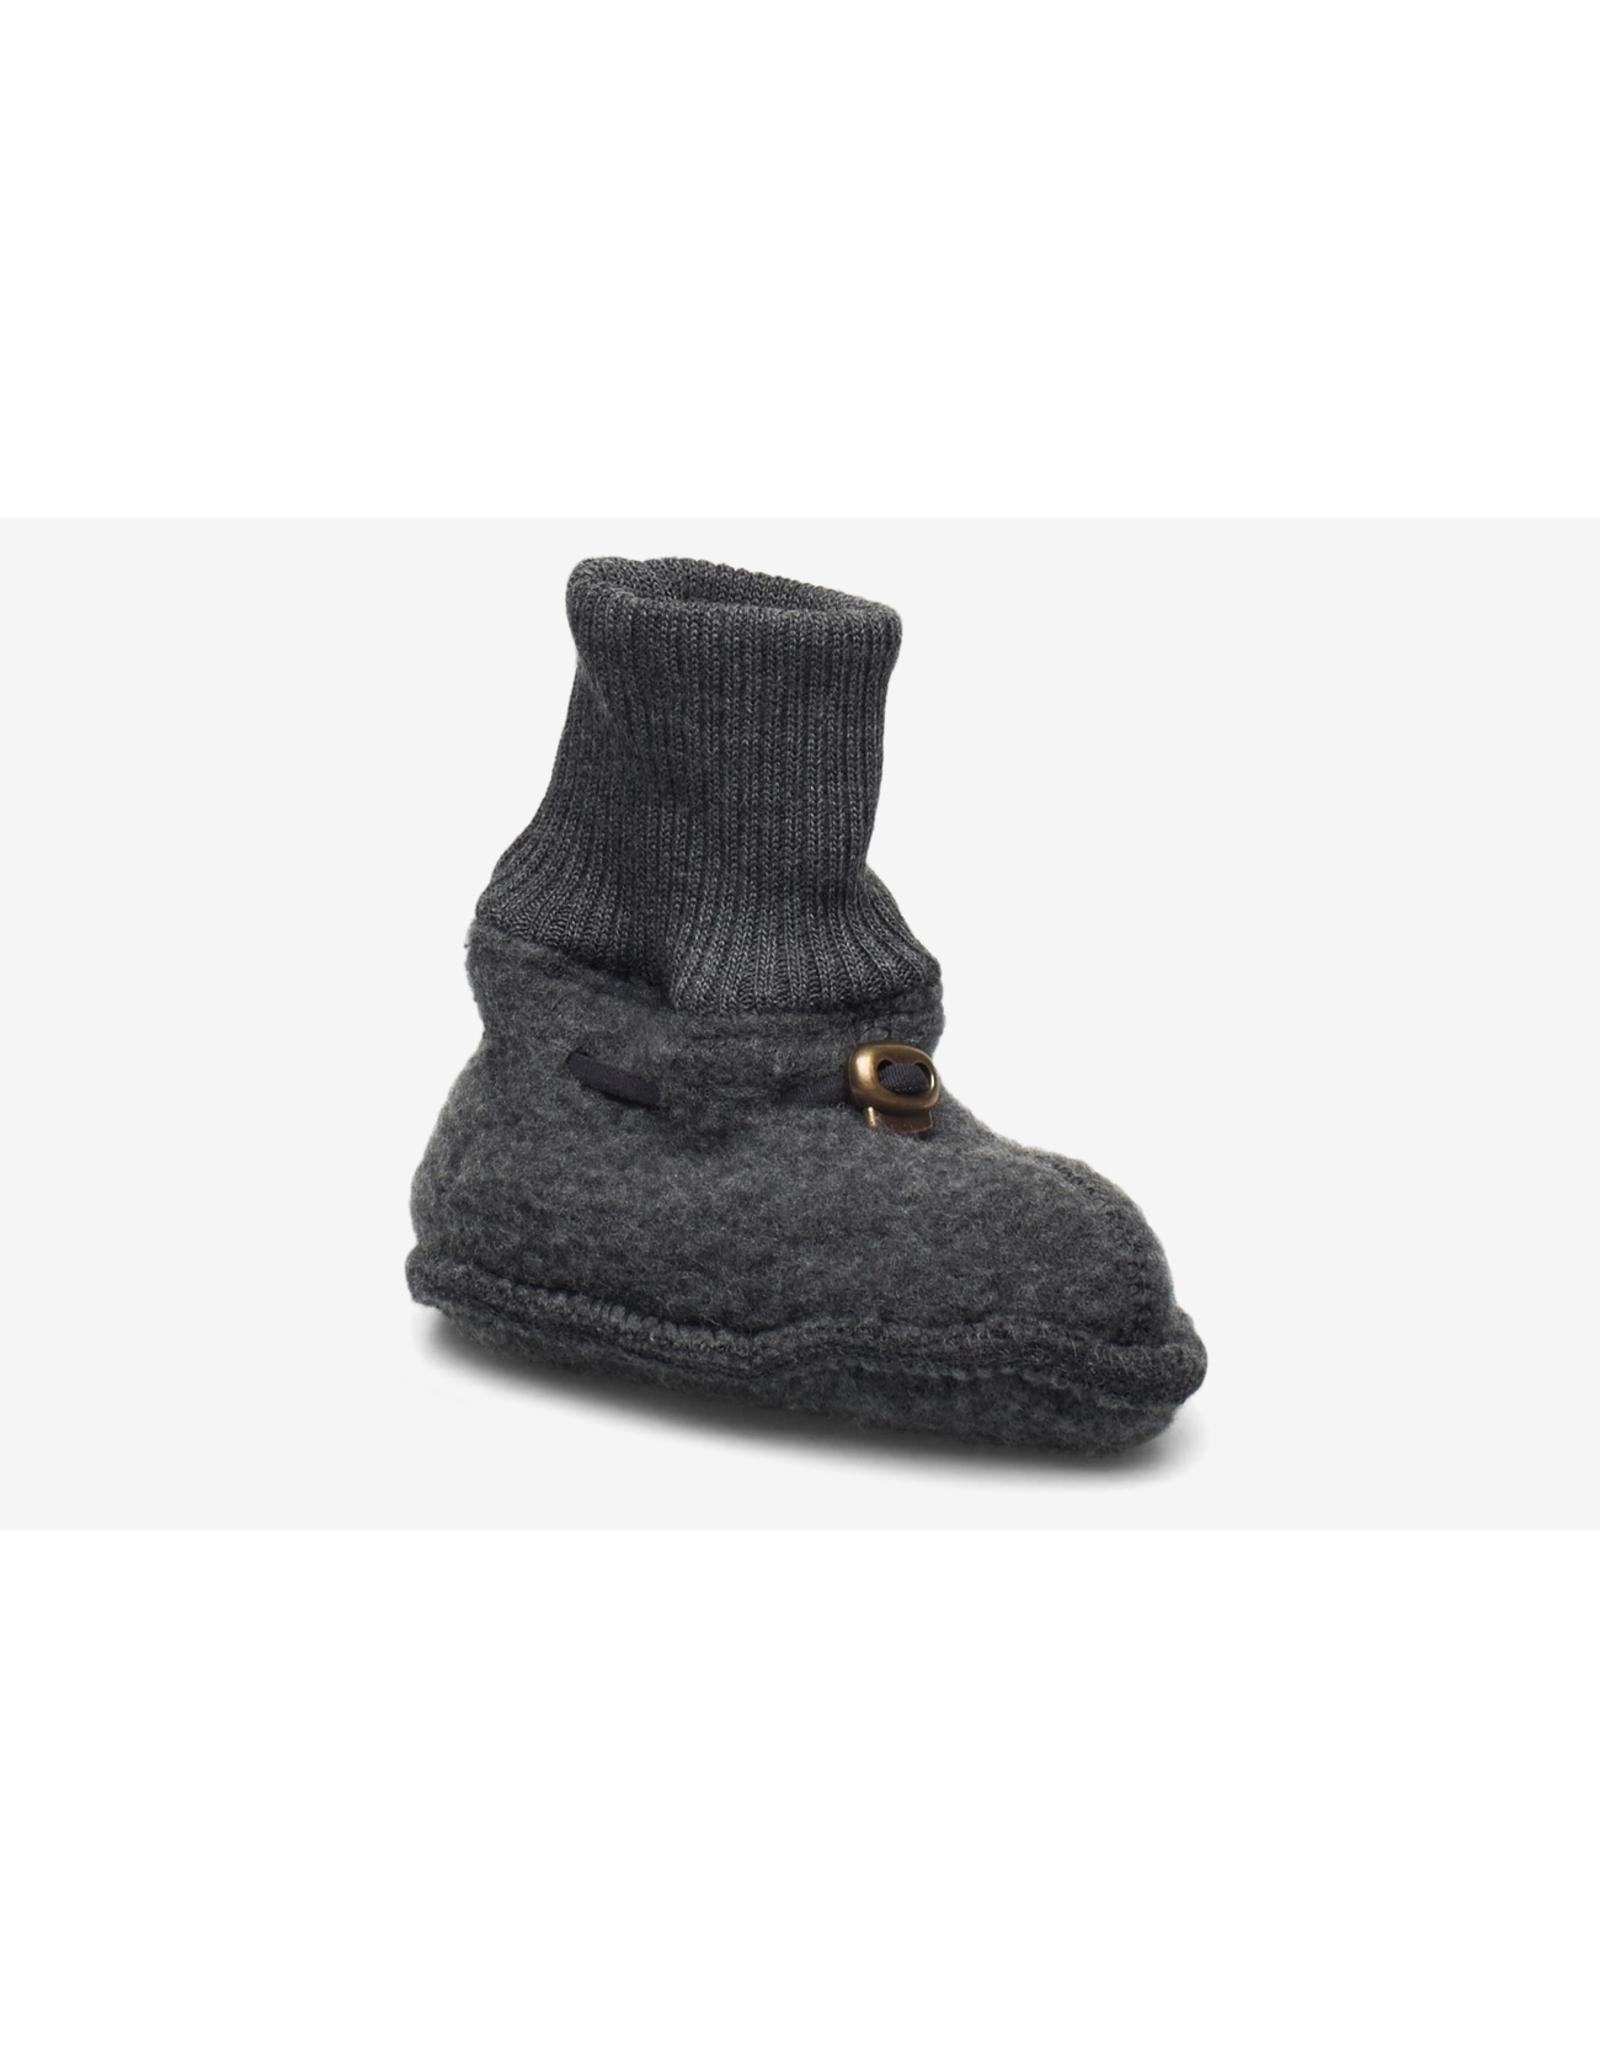 Mikk-Line Mikk-Line 'Wool Footies' instappers Anthracite Melange